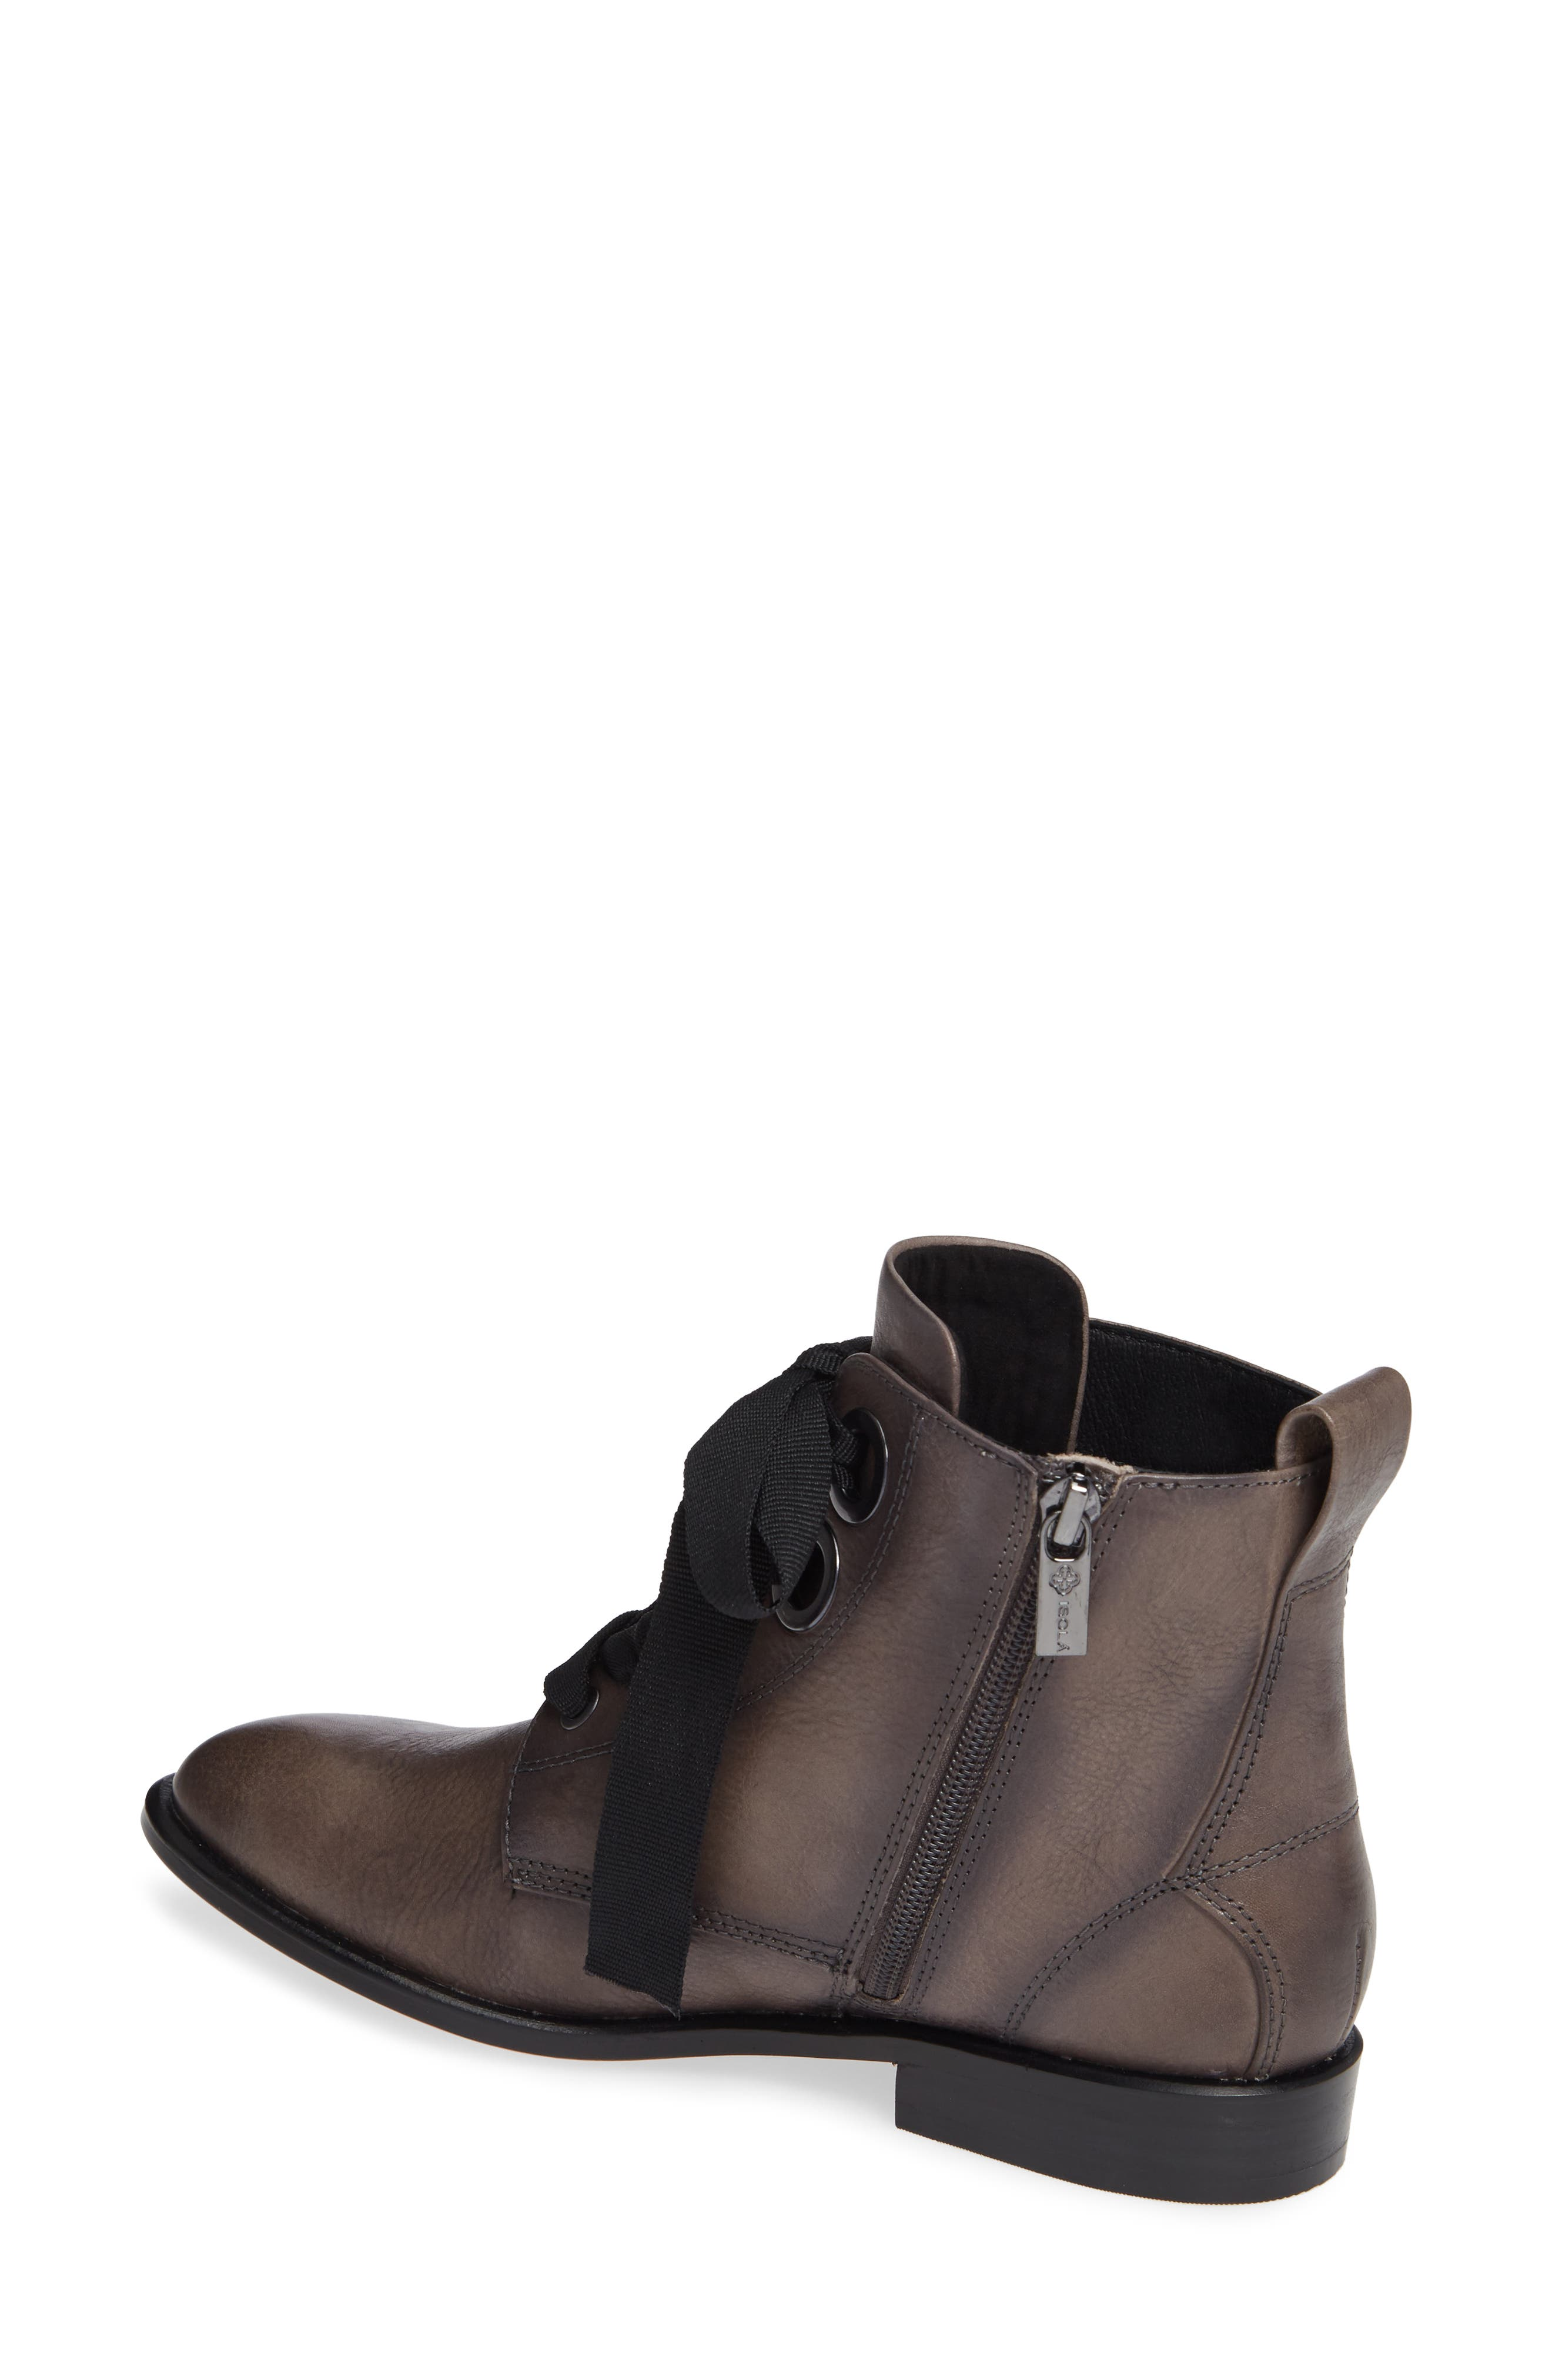 Tocina Bootie,                             Alternate thumbnail 2, color,                             PAVEMENT LEATHER